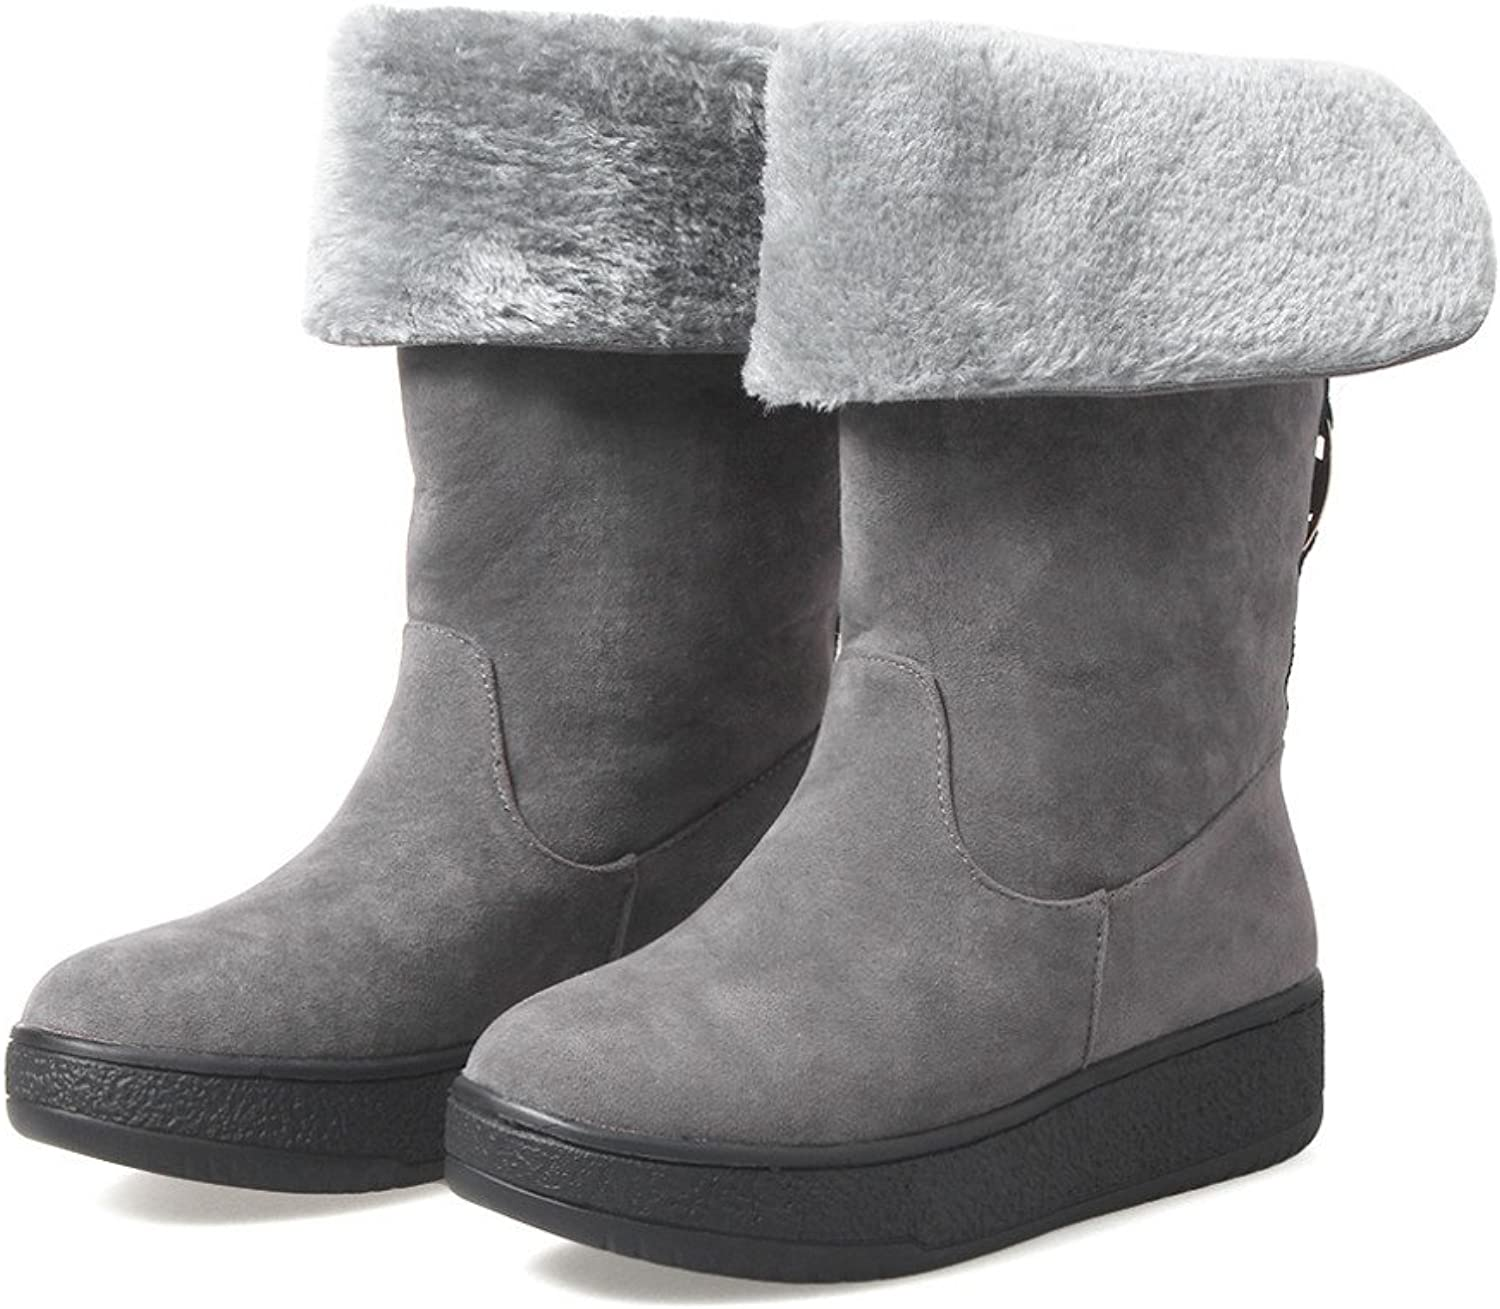 MFairy Woman's Low Heel Mid-Calf Snow Boots Warm Winter Ankle Boots